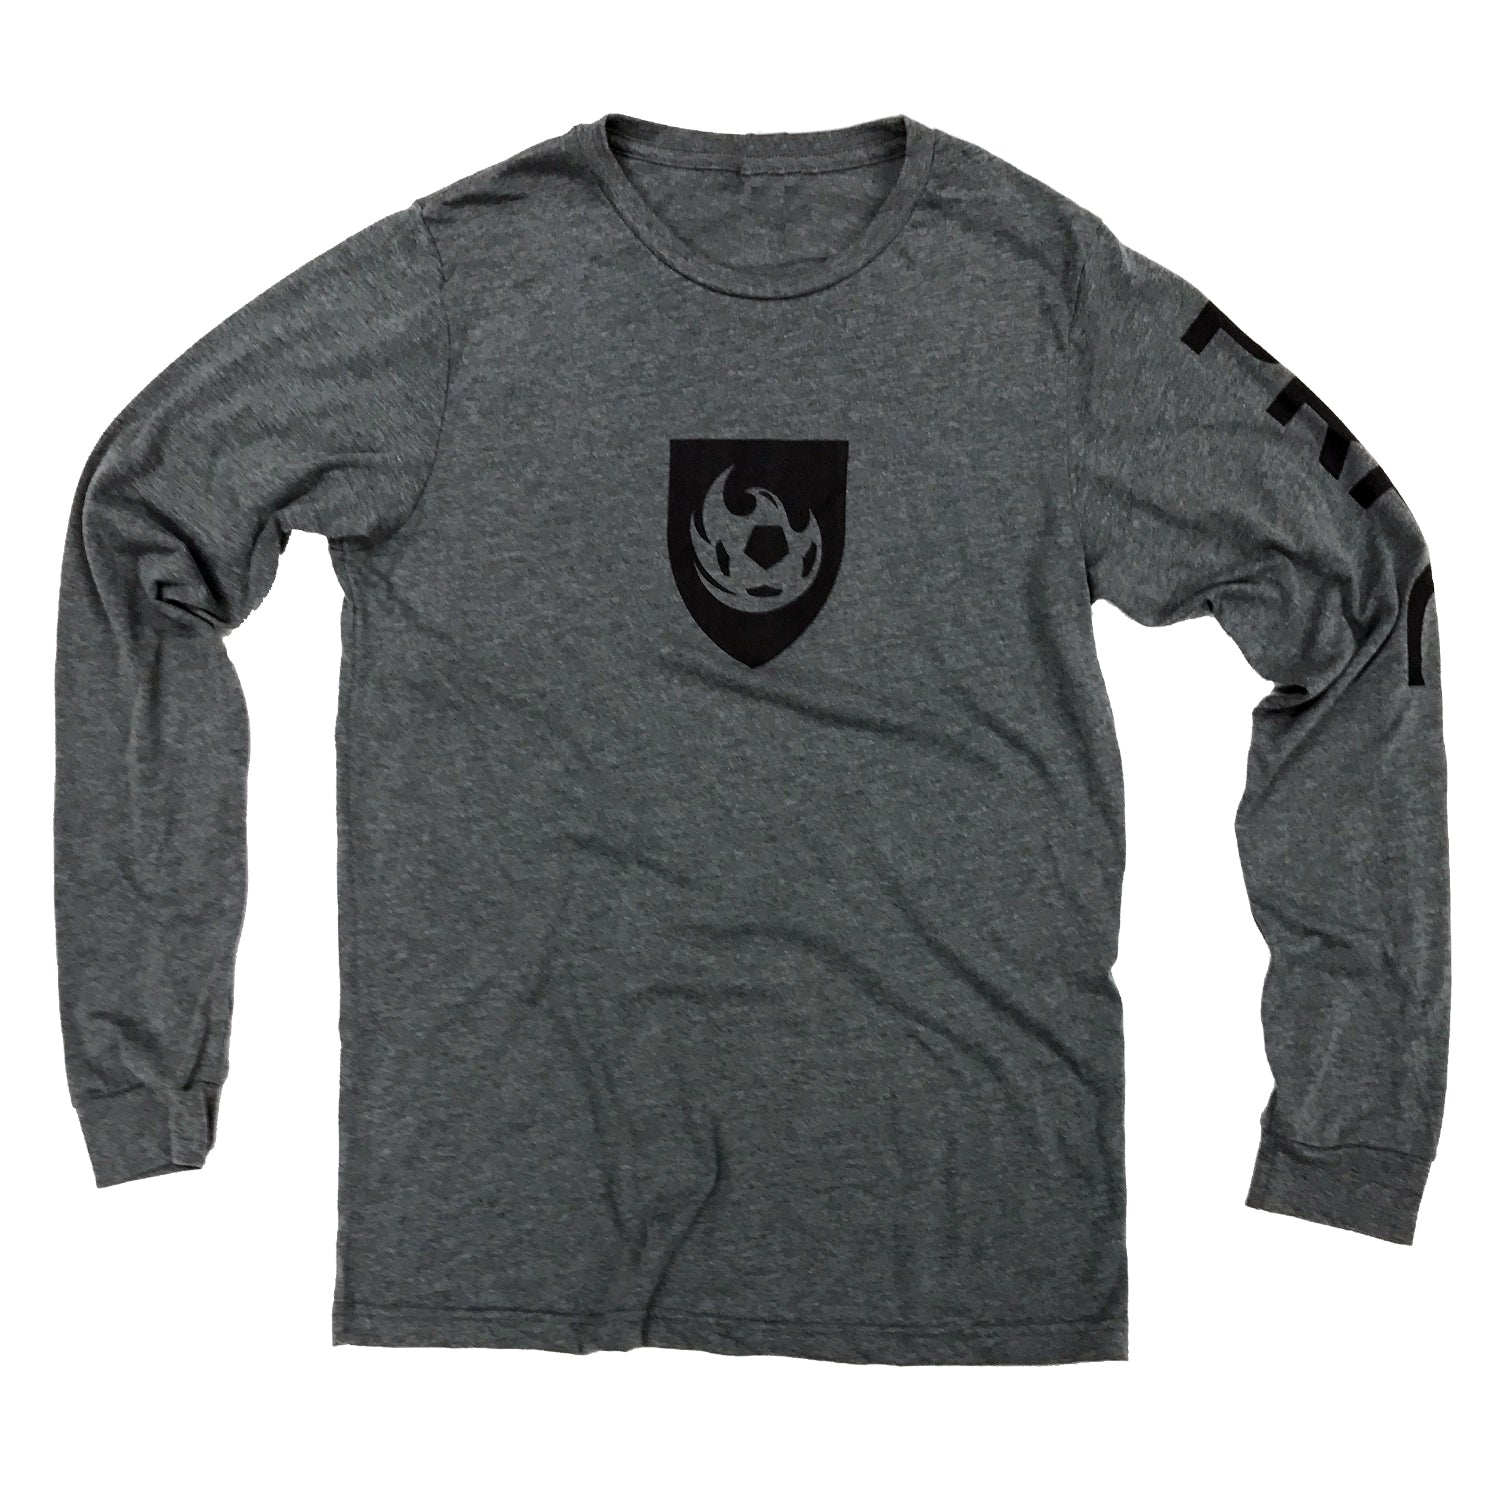 Phoenix Rising Men's Long Sleeve Tee - Grey